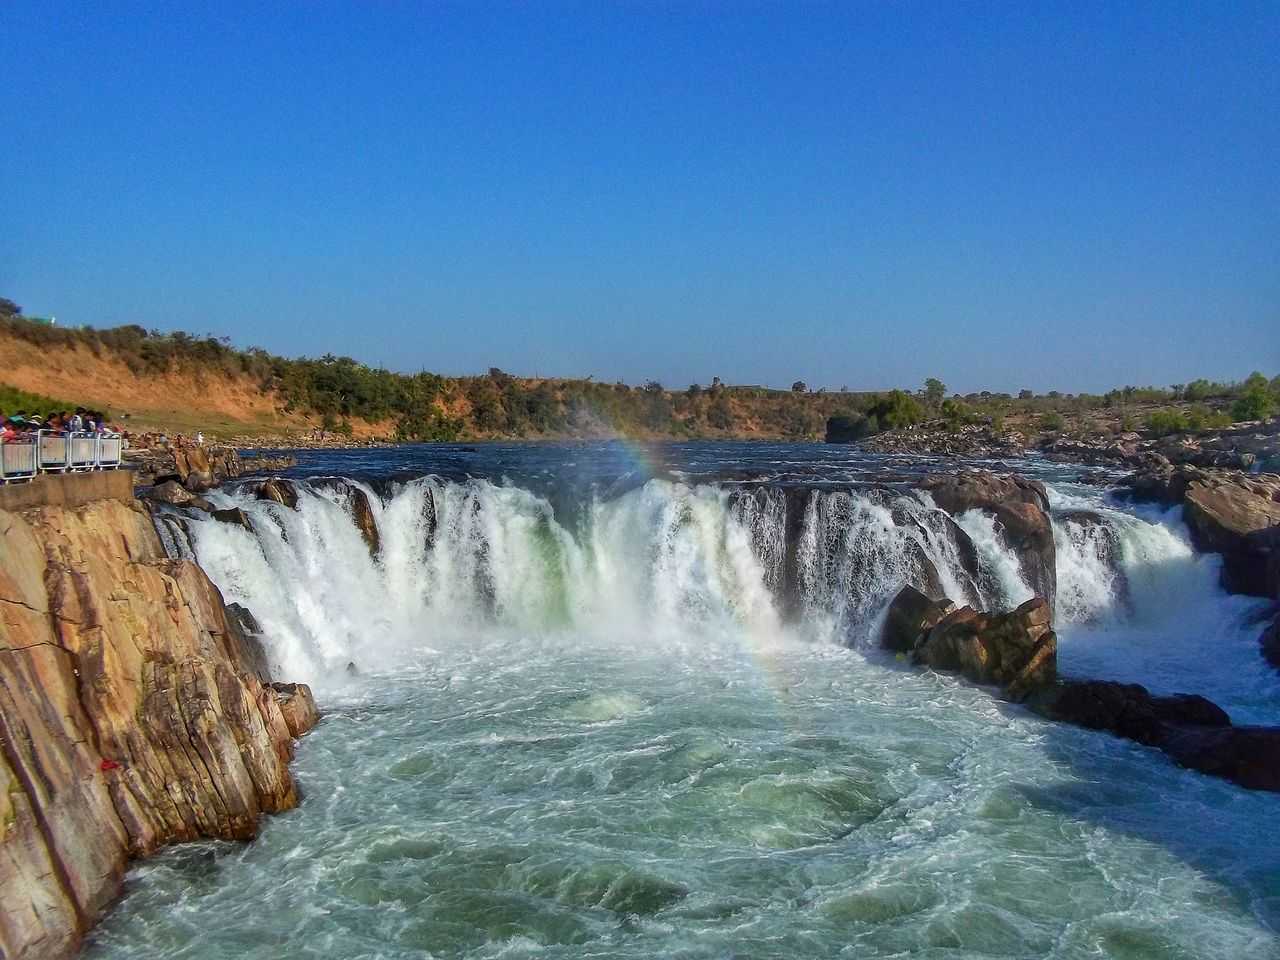 Jabalpur ,India Water Motion Long Exposure Outdoors Nature Beauty In Nature No People Blue Clear Sky Power In Nature Waterfall Sky Day Tranquil Scene EyeEm Waterfall Photography Beauty In Nature Nature Tranquility Rocks In Water Nature Photography Narmadariver Jabalpur Scenics